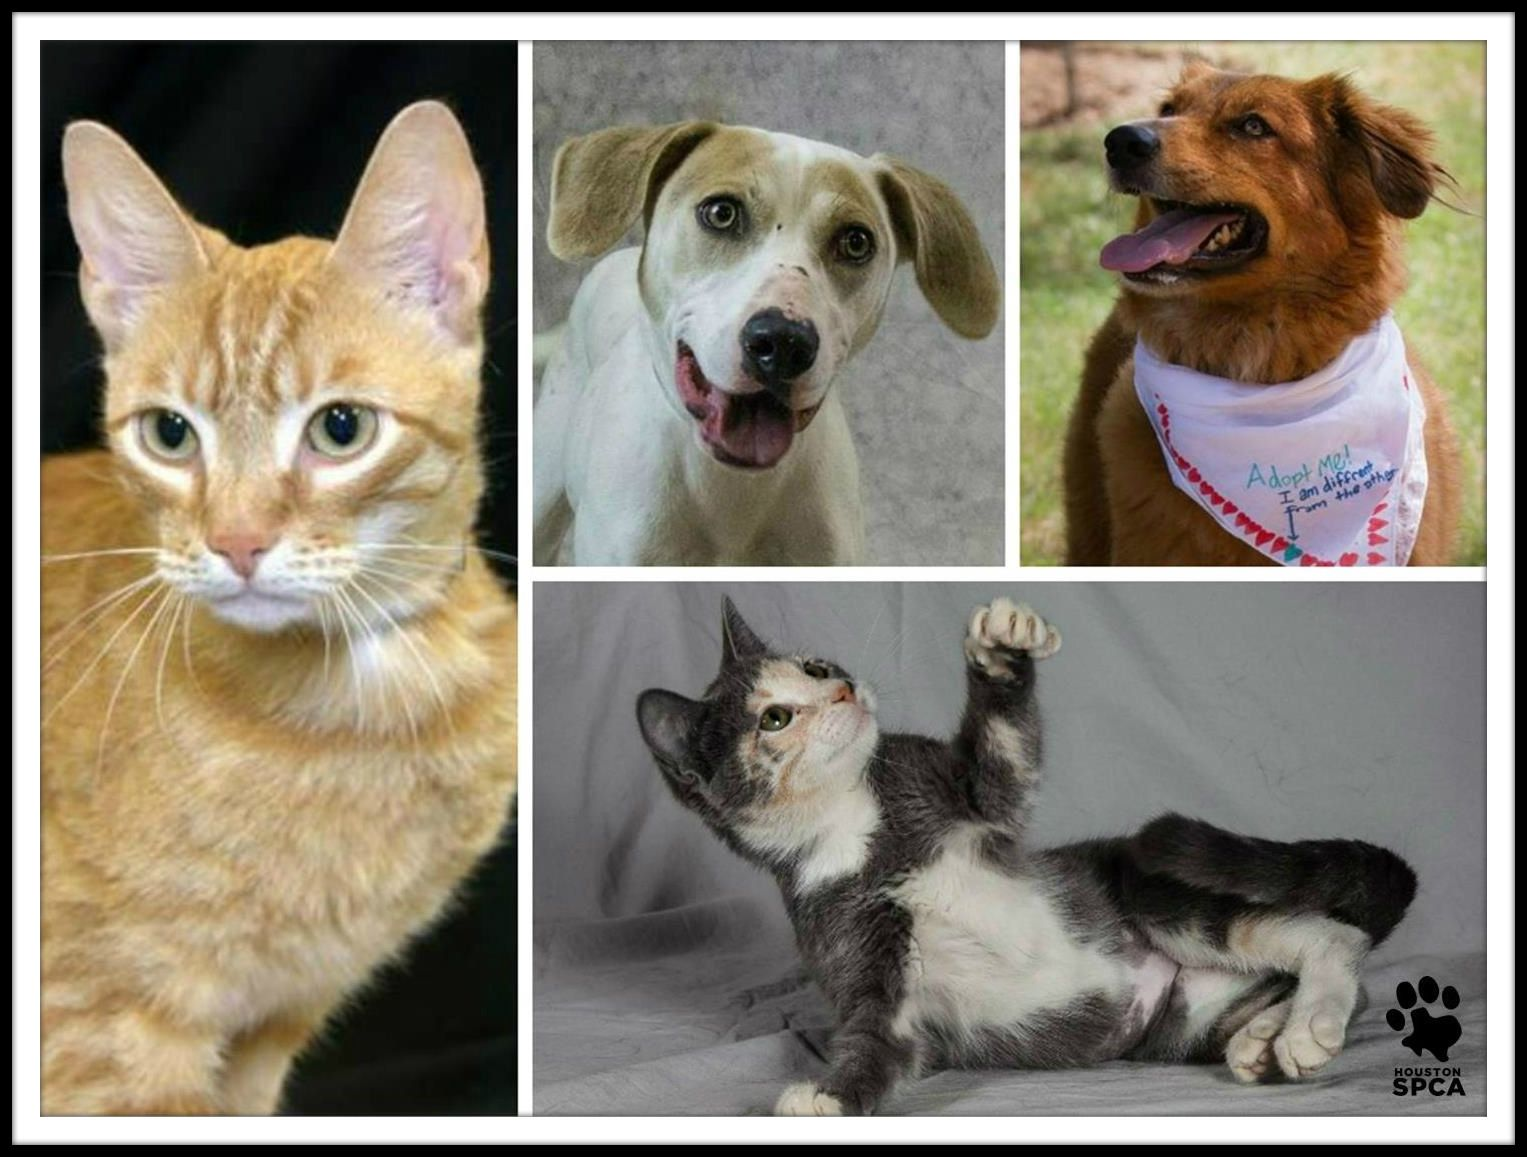 We Have Great News To Share All Kittens Cats And Dogs Excluding Those In The Spot Peabody Room At The Houston Cat Adoption Furry Friend Animal Rescue Site